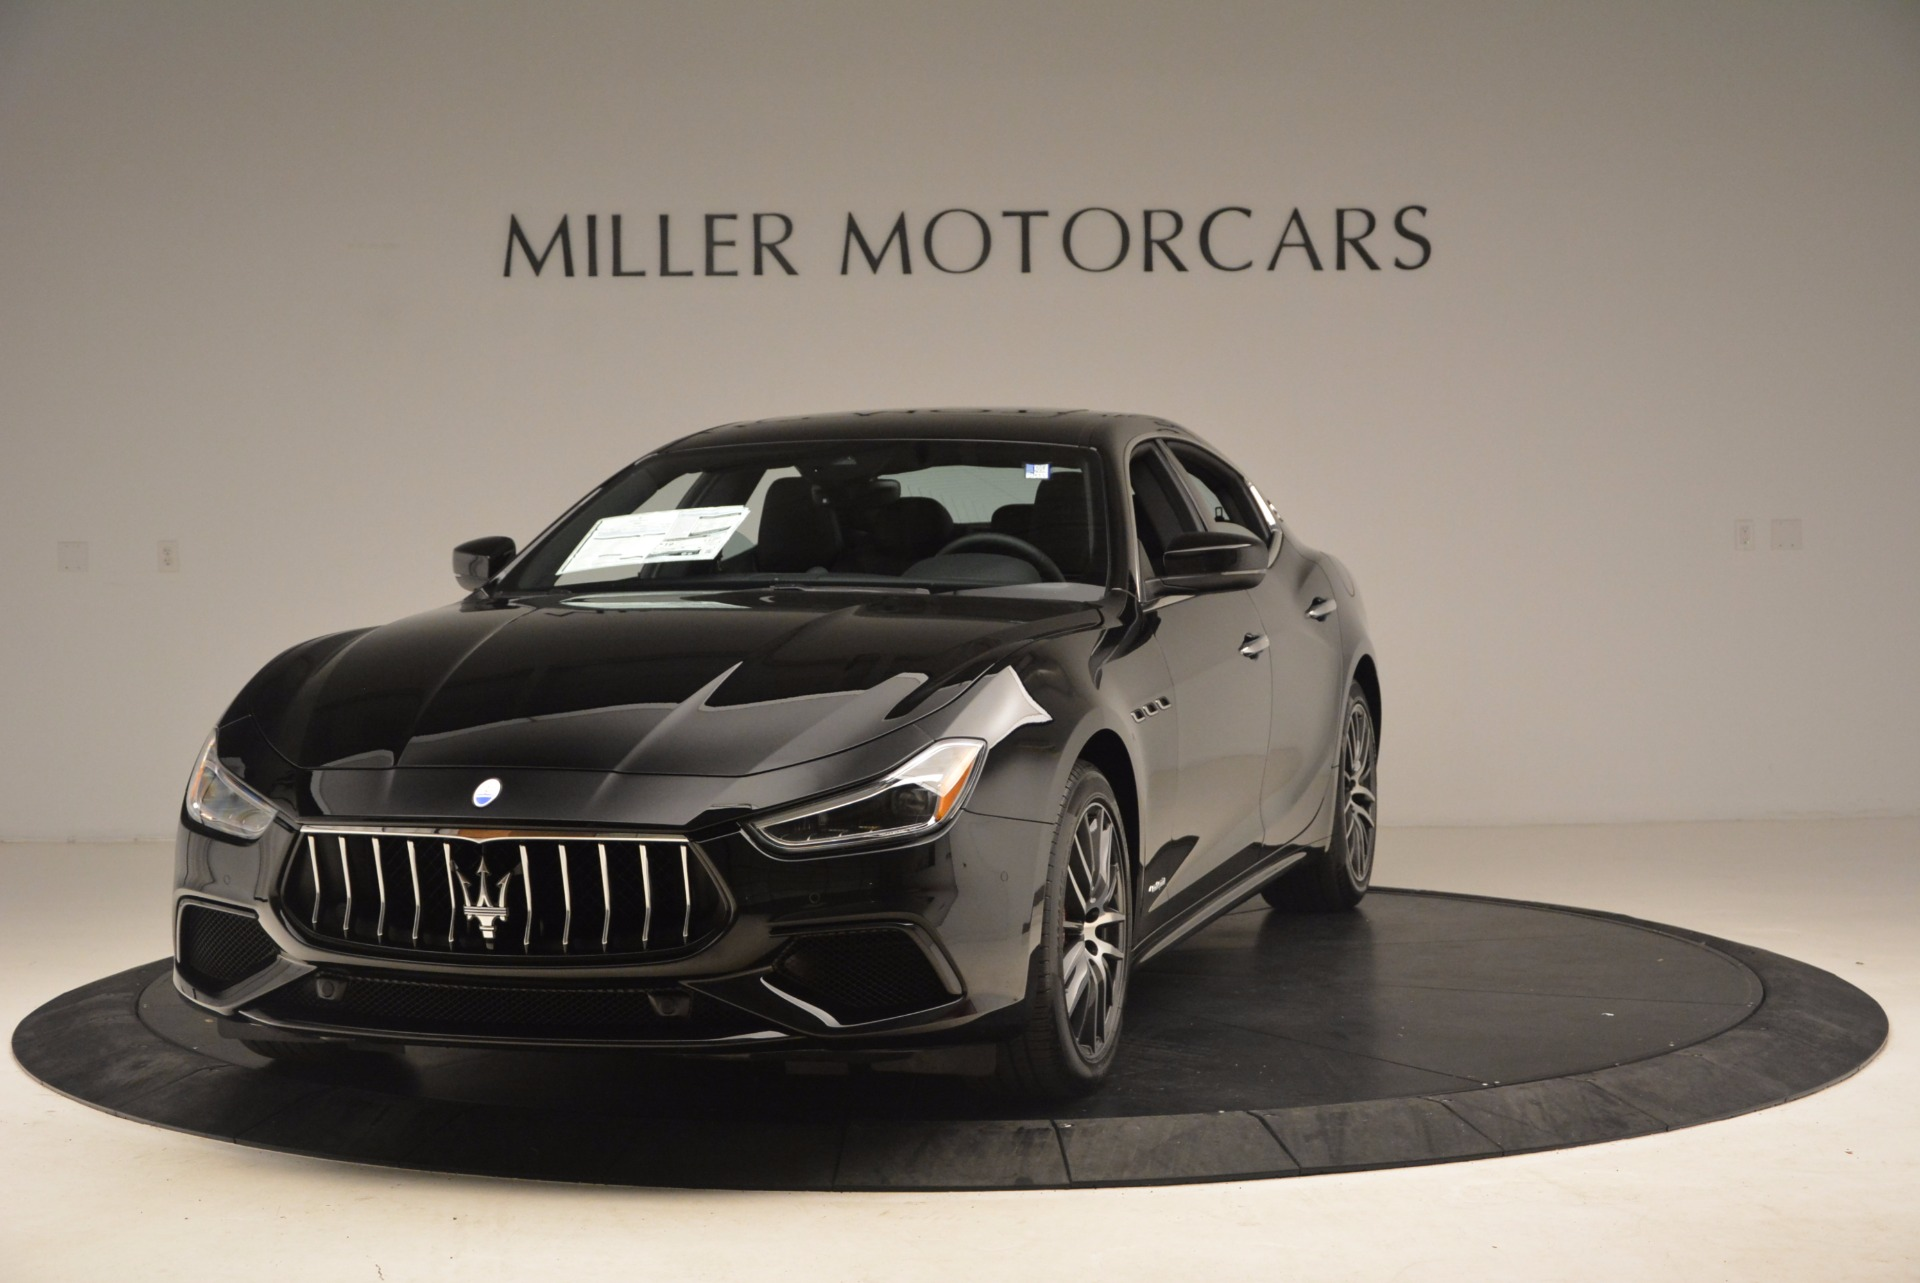 Used 2018 Maserati Ghibli S Q4 Gransport for sale Sold at McLaren Greenwich in Greenwich CT 06830 1